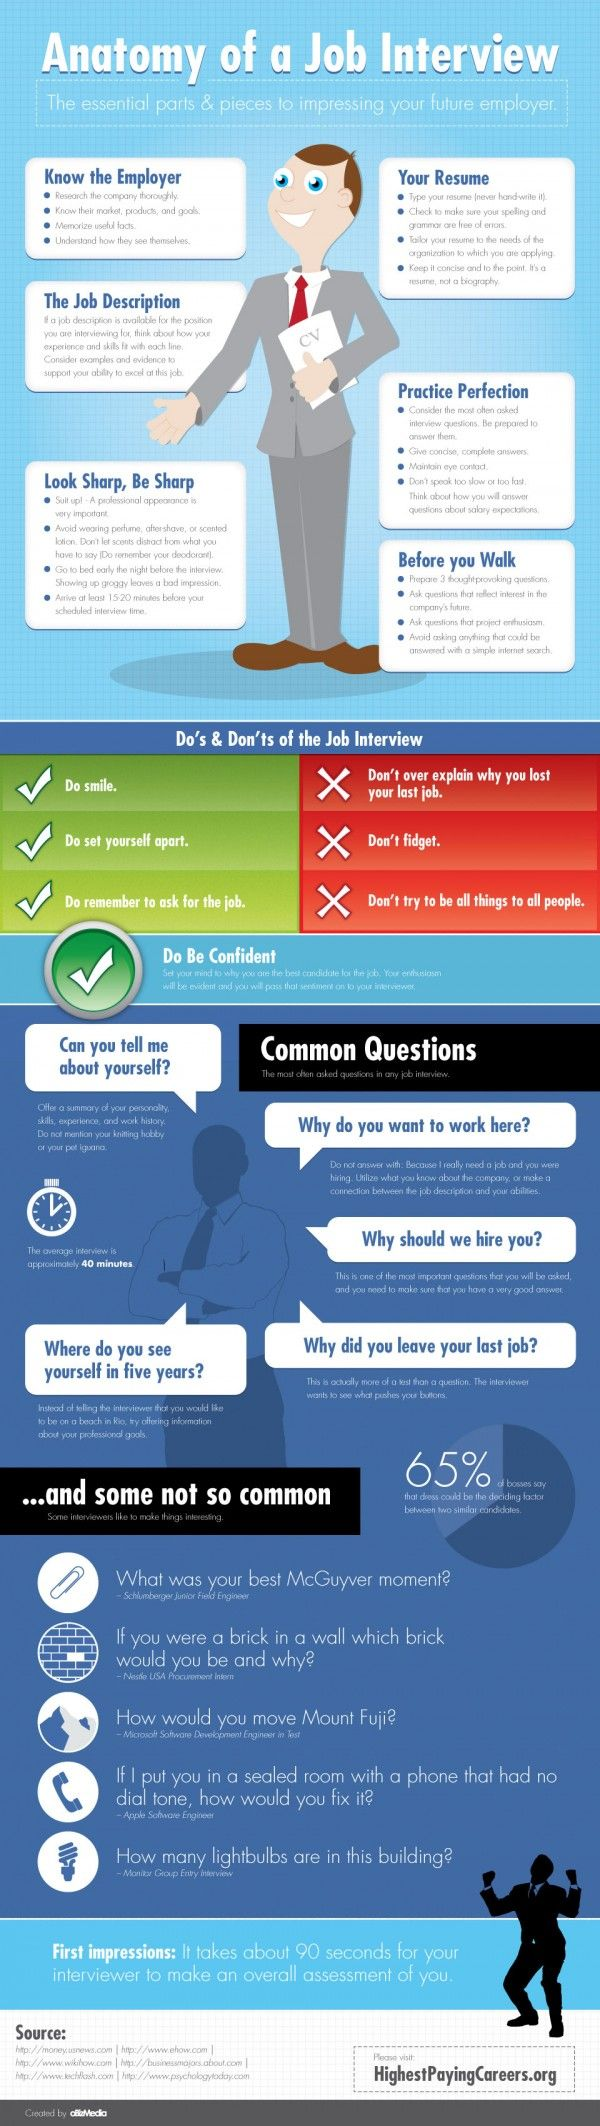 Infographic: Anatomy of a Job Interview (Love Infographic – www.loveinfographics.com)